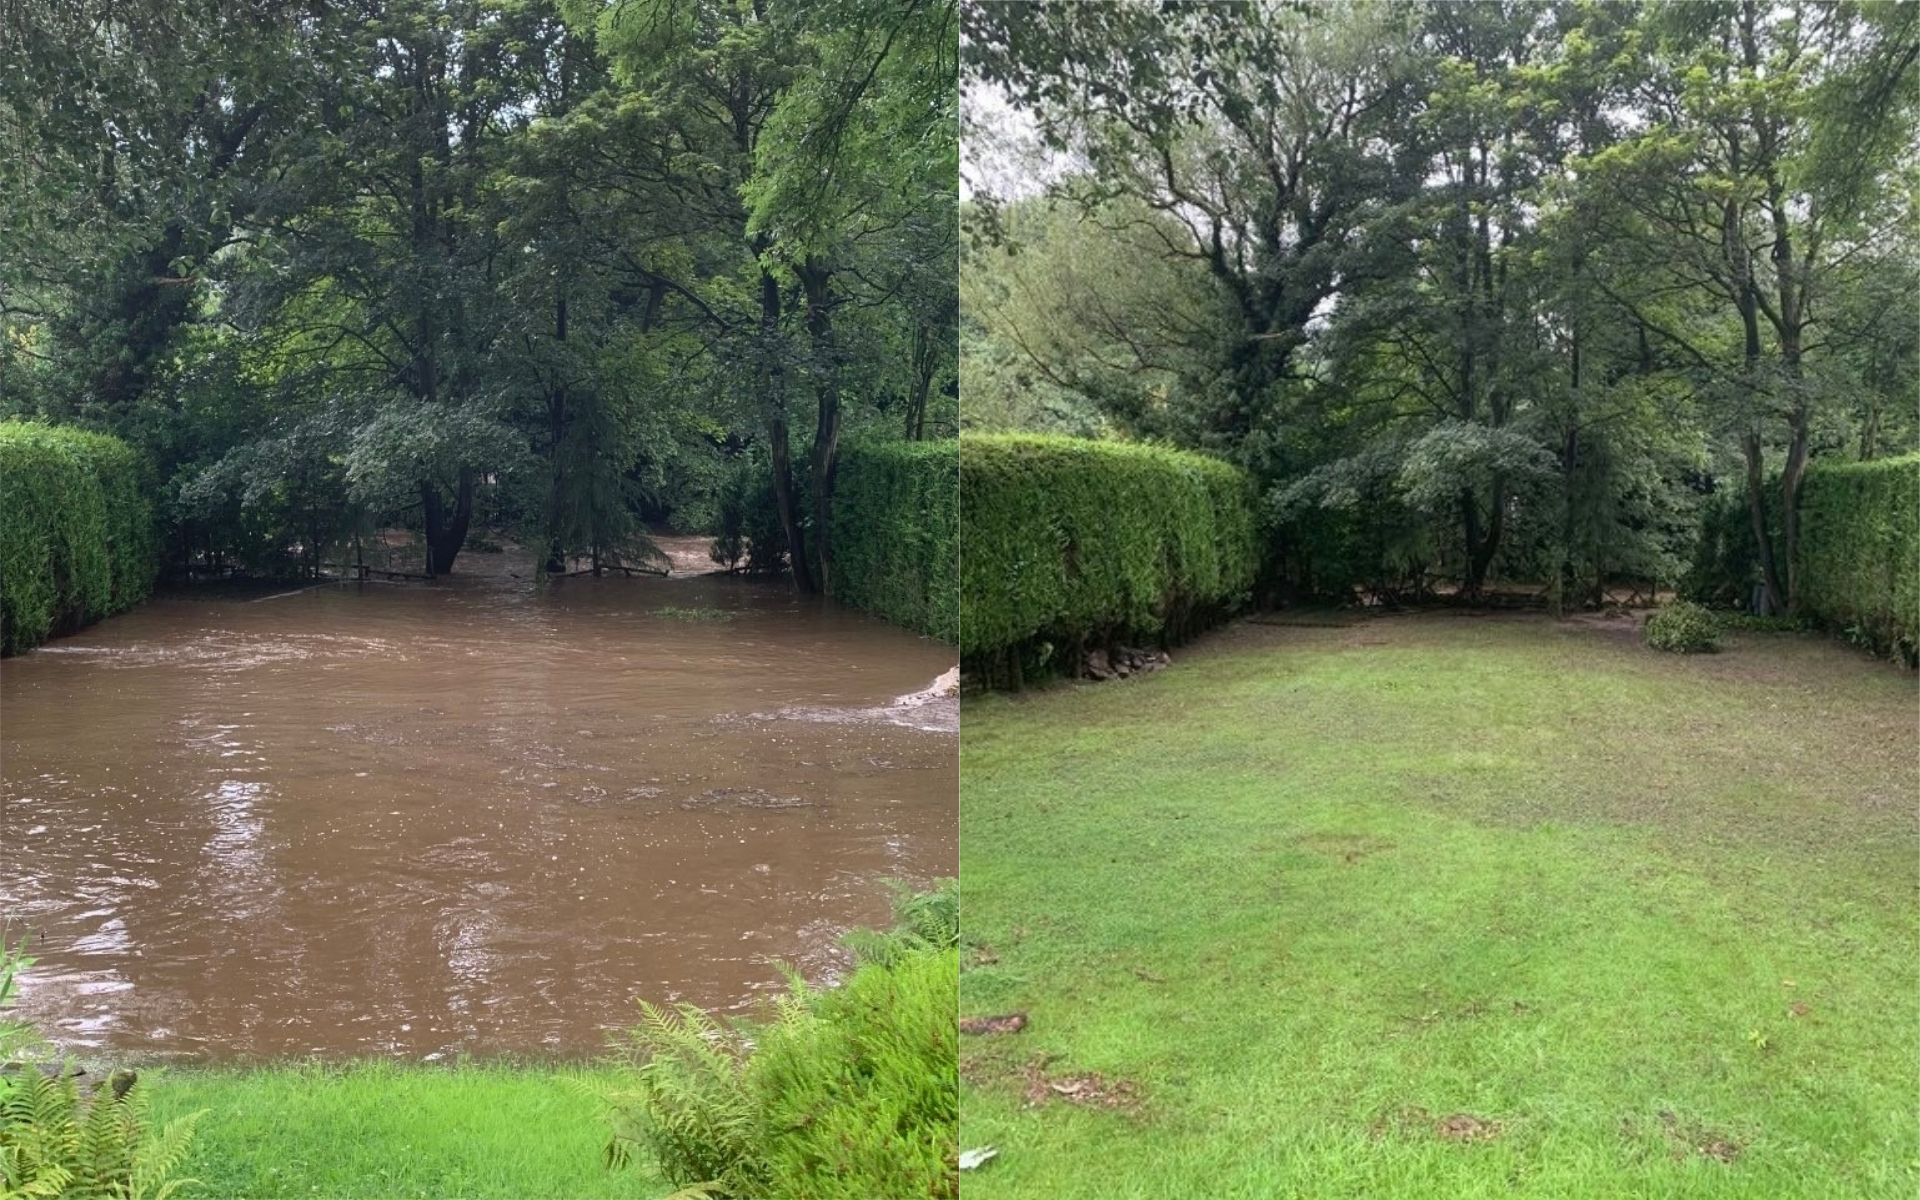 Ms Sillitoe's garden during and after Wednesday's flooding